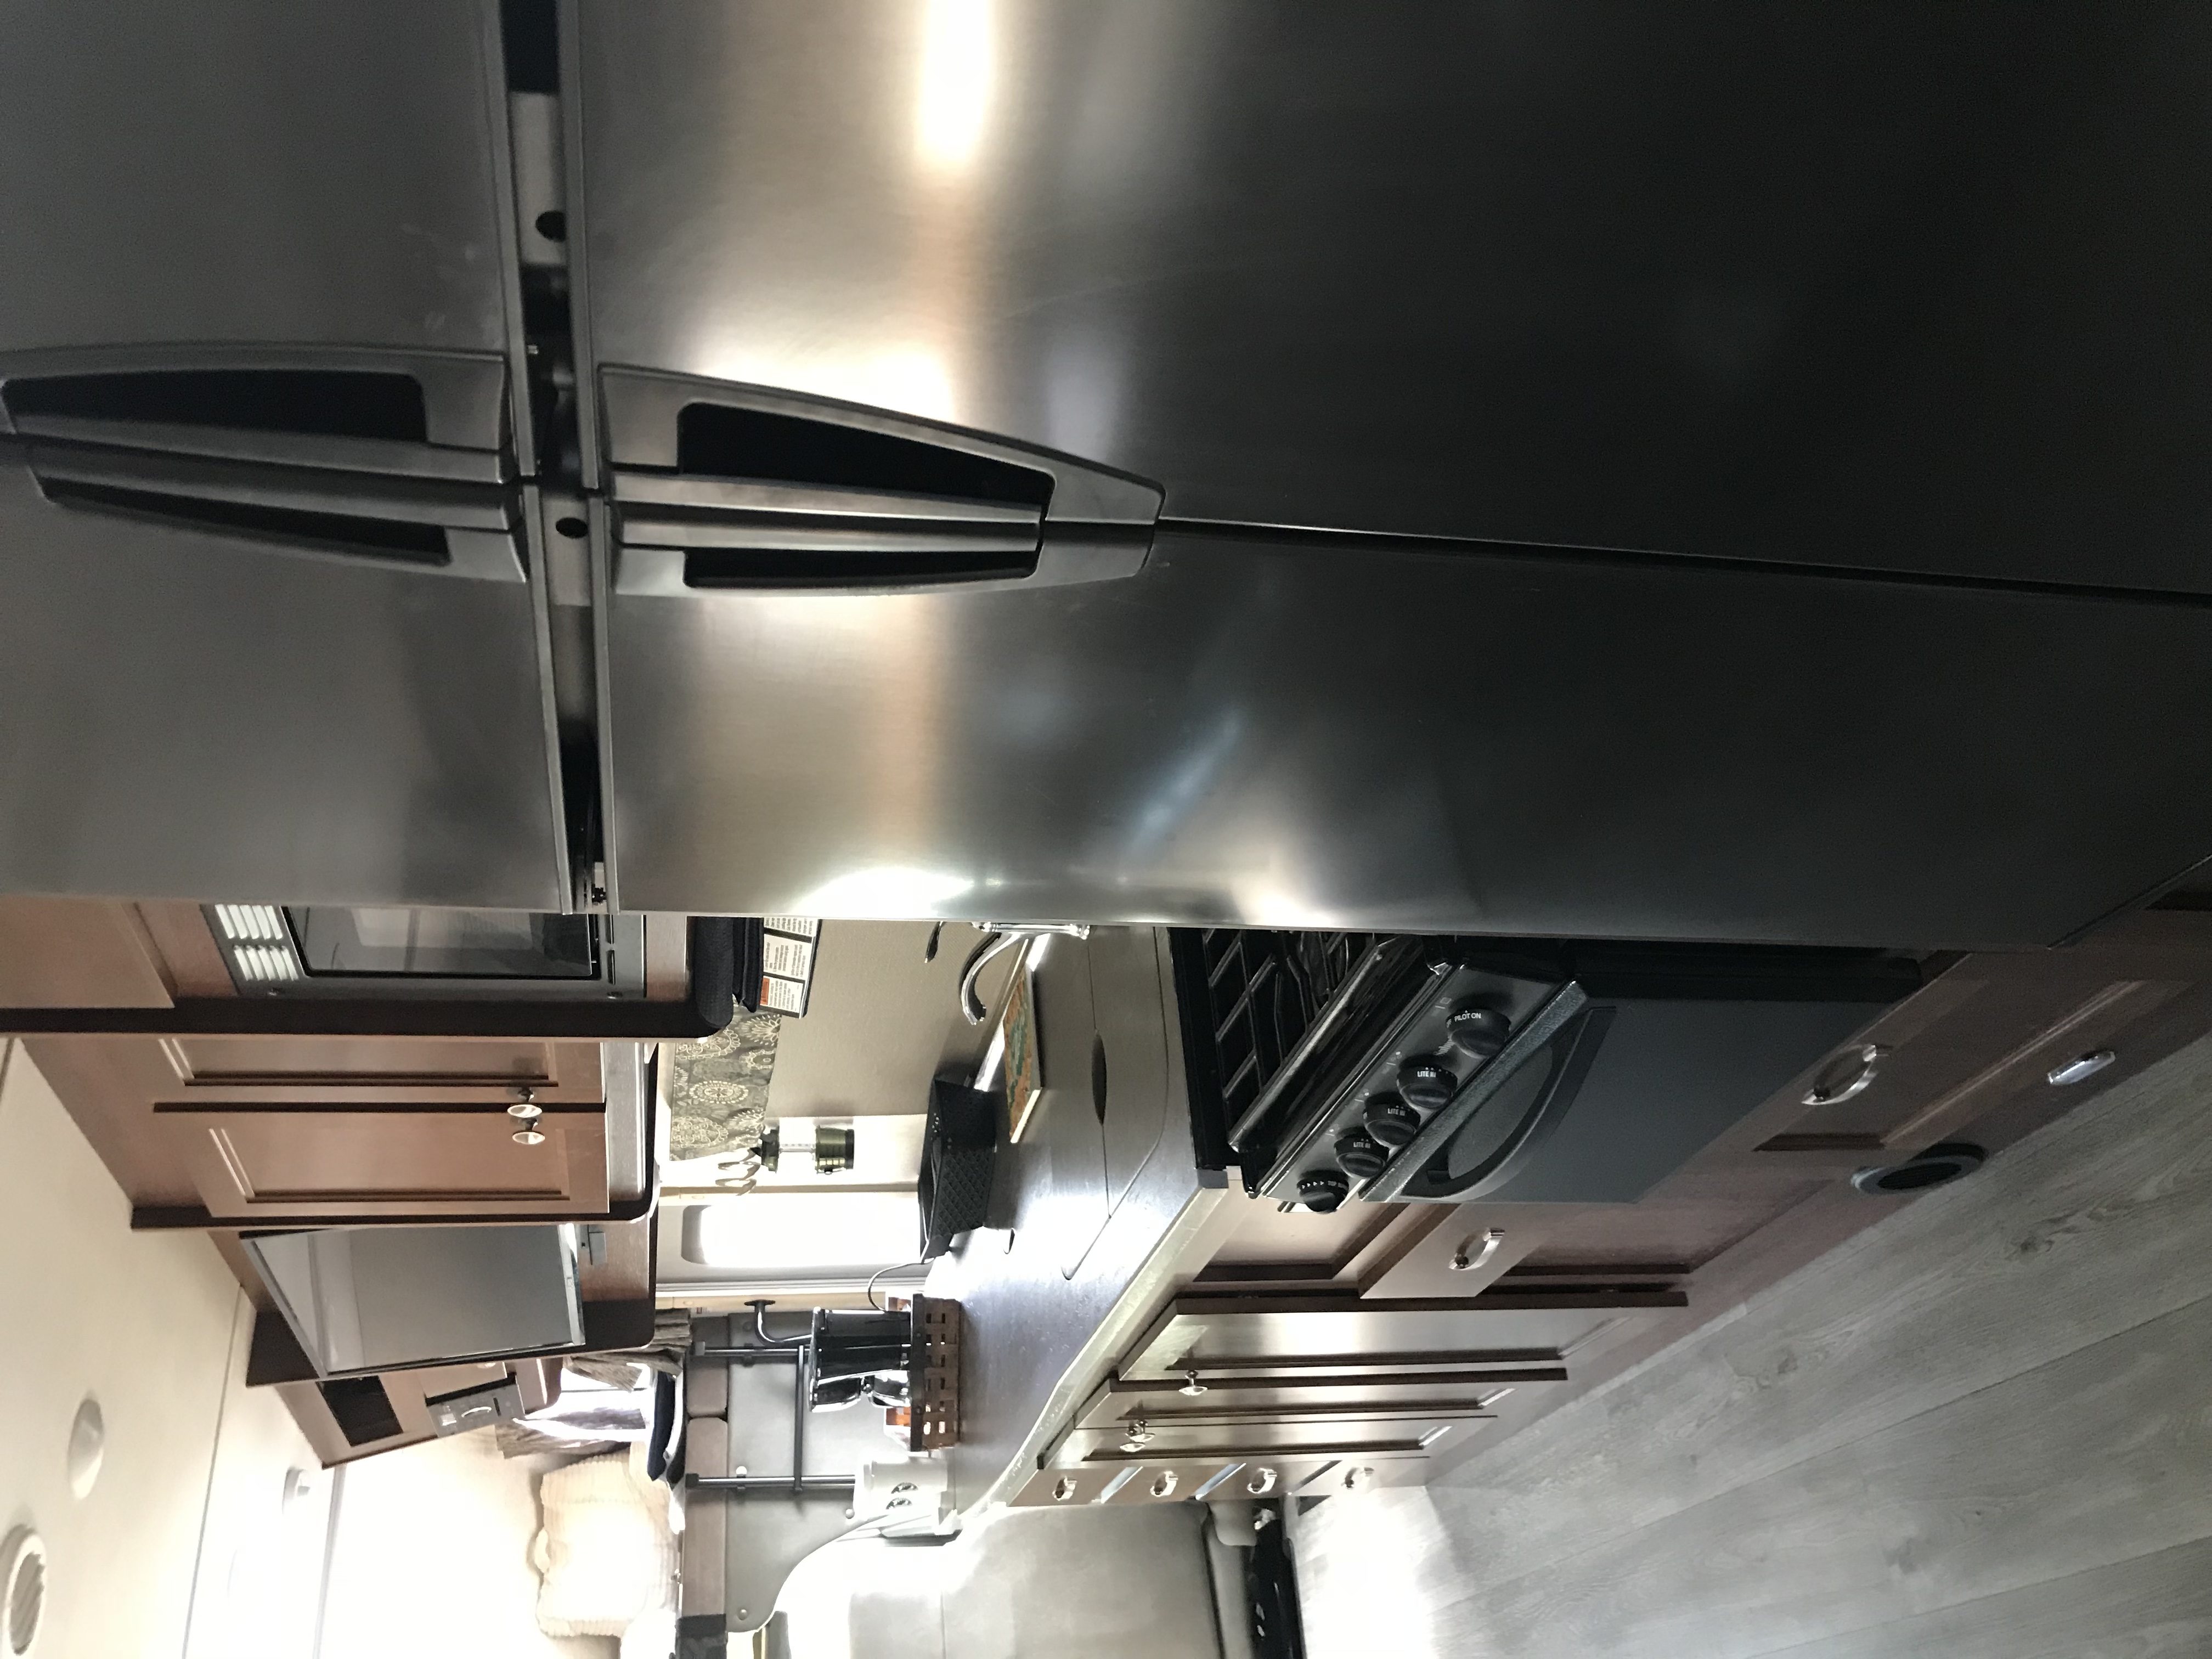 We simply loved this enormous refrigerator. It's wonderful because you can use this propane refrigerator when Boondocking. So you can be off grid for days without being plugged in!. Forest River Sunseeker 2018